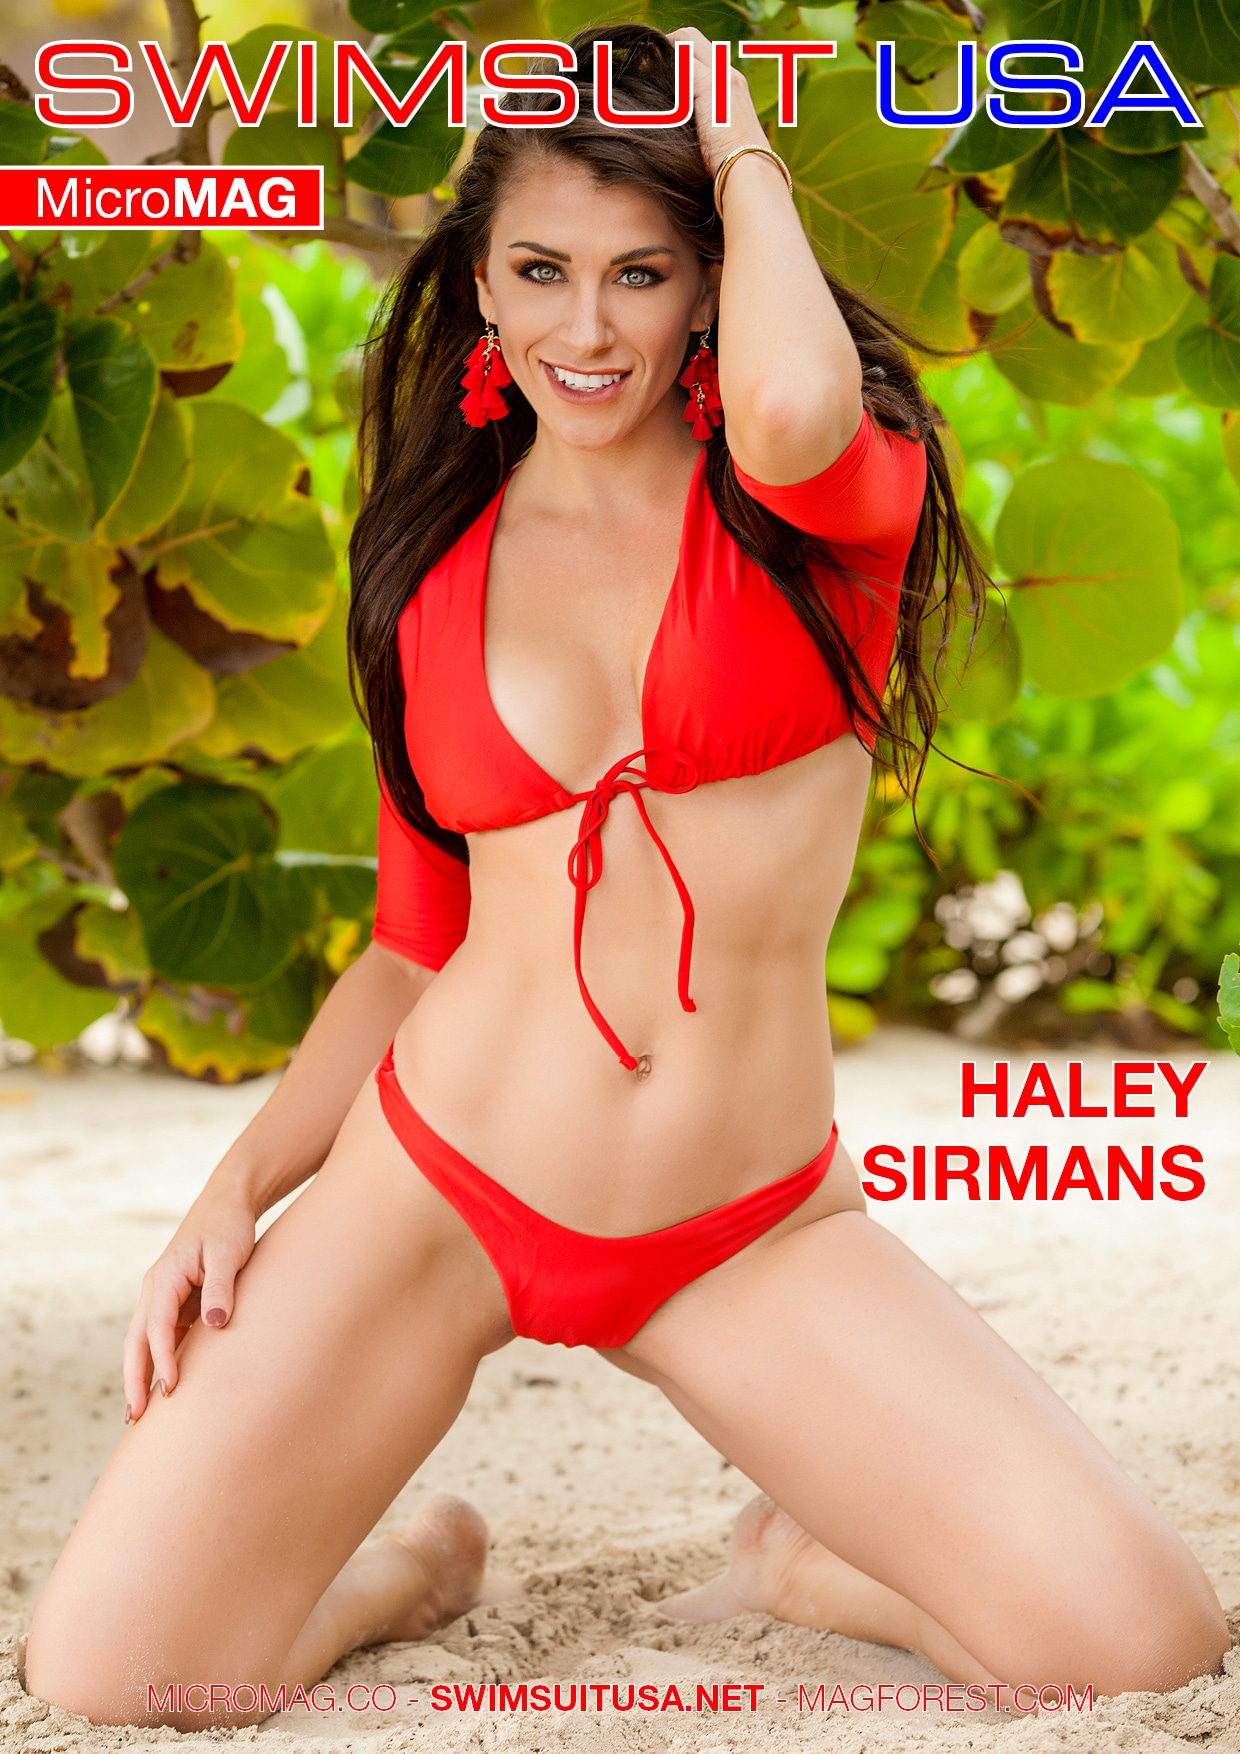 Swimsuit USA MicroMAG - Haley Sirmans - Issue 4 2